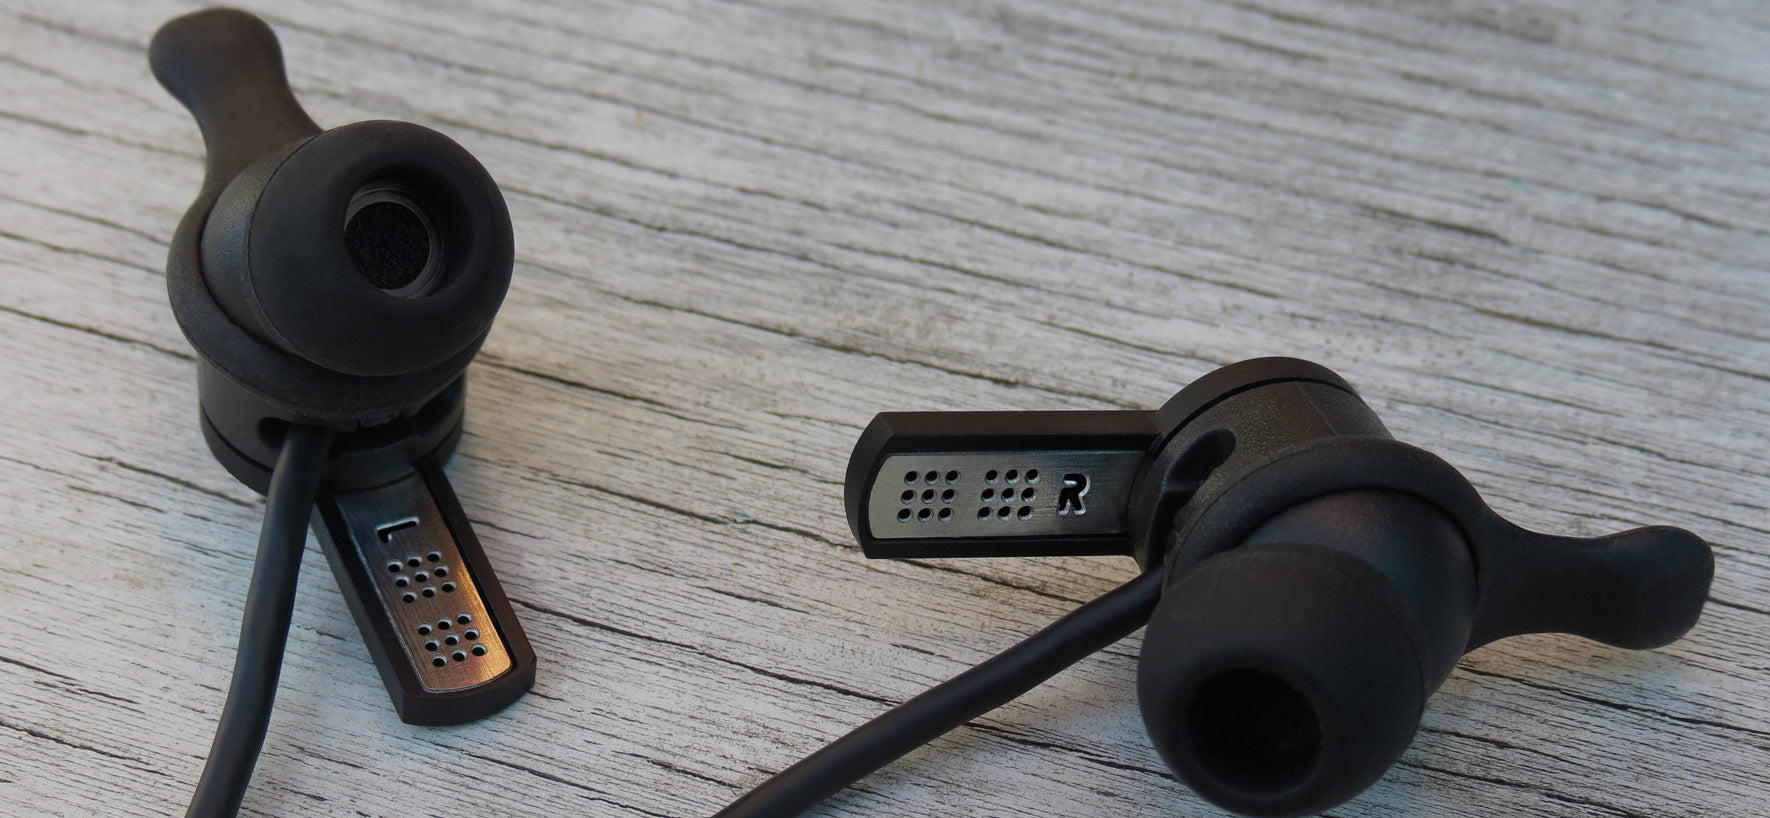 SC1000 earbuds with microphones